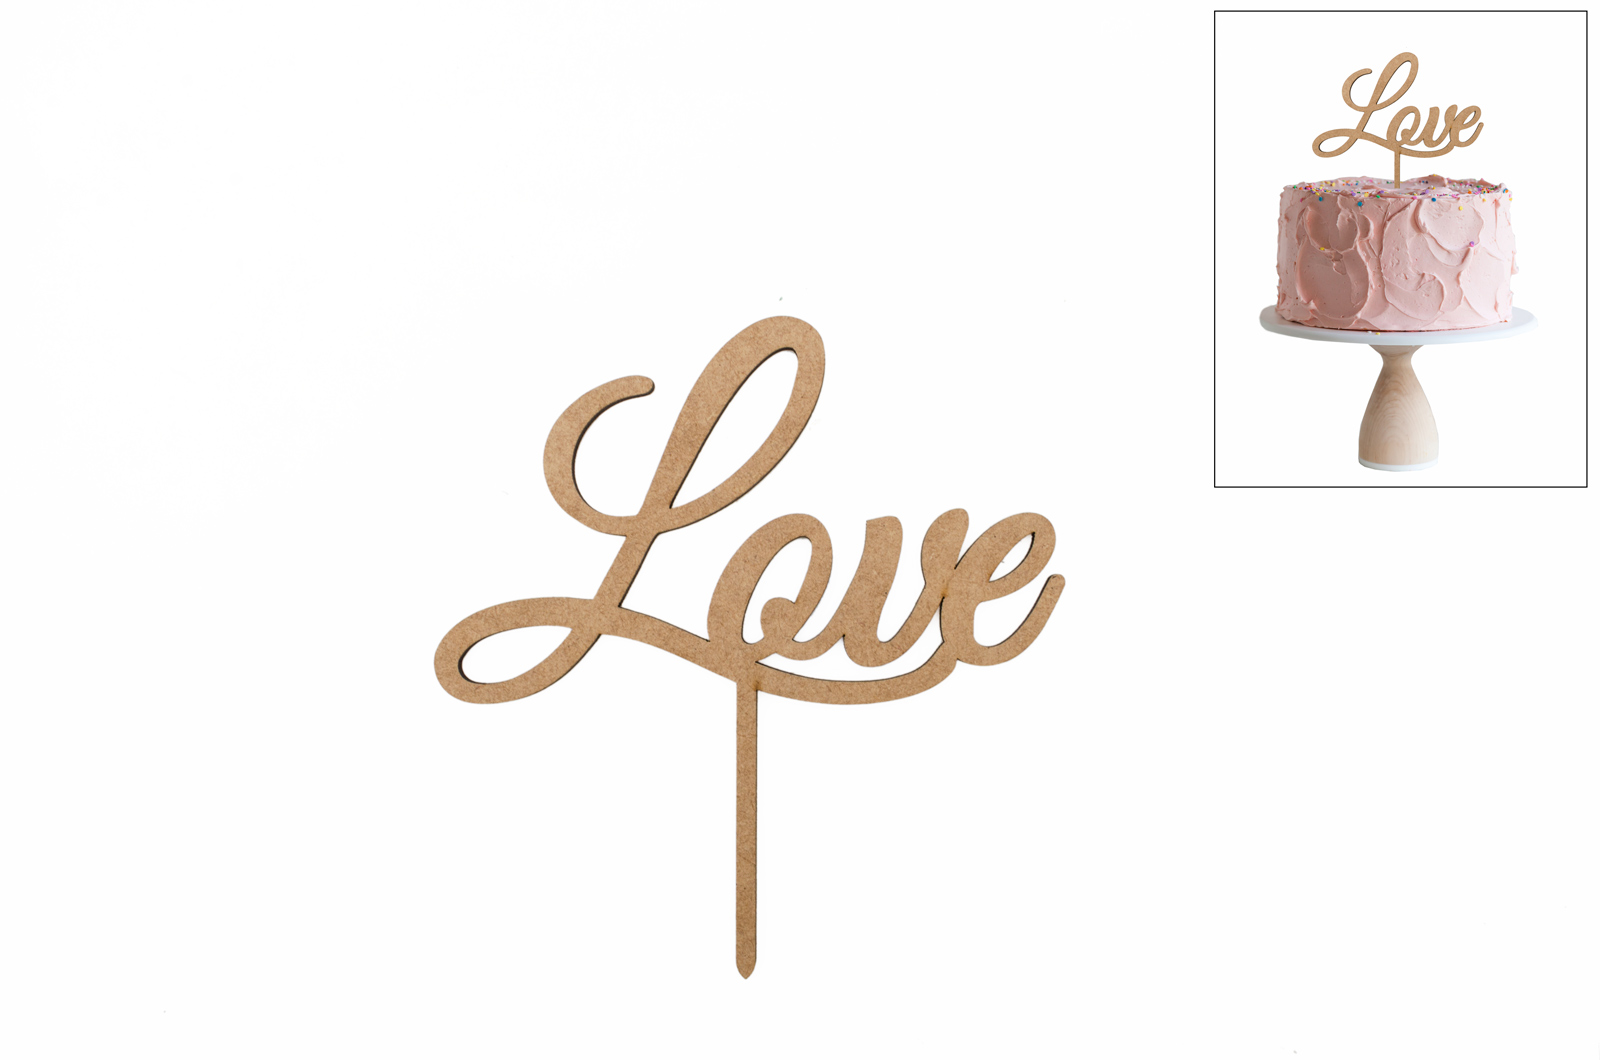 SET 4 ESPETOS LOVE 15X15.8X0.3CM MDF